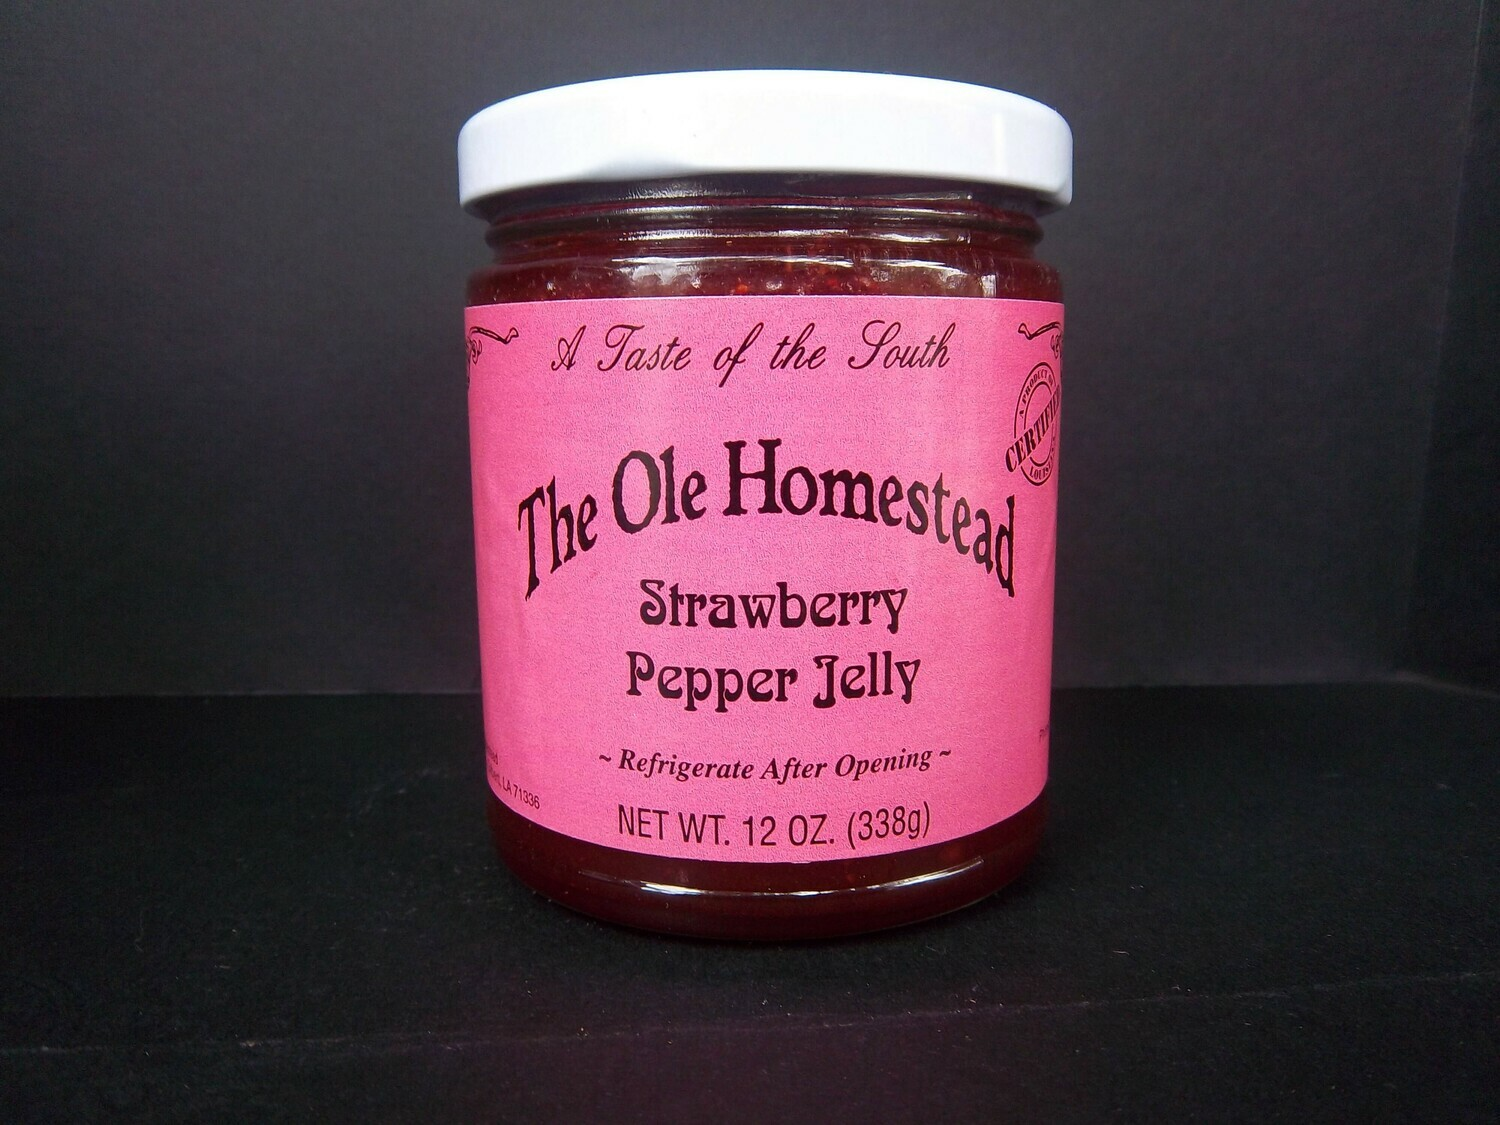 Ole Homestead Strawberry Pepper Jelly